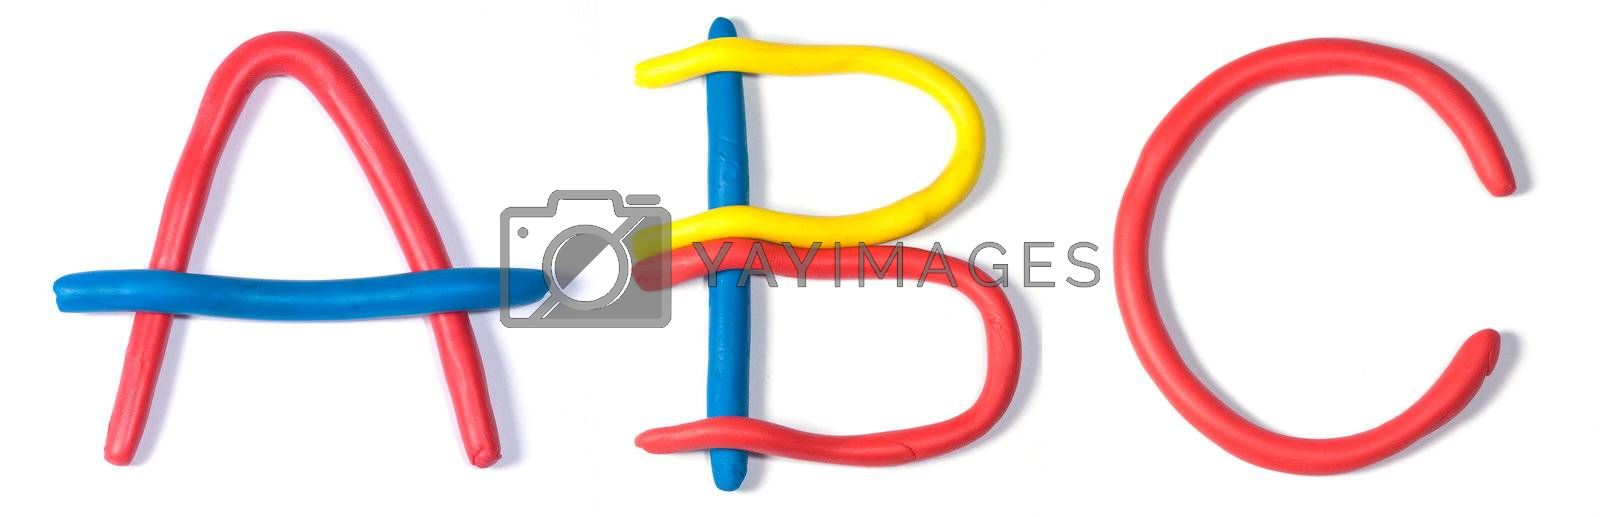 The characters a, b and c shaped in primary coloured plasticine, isolated on white.